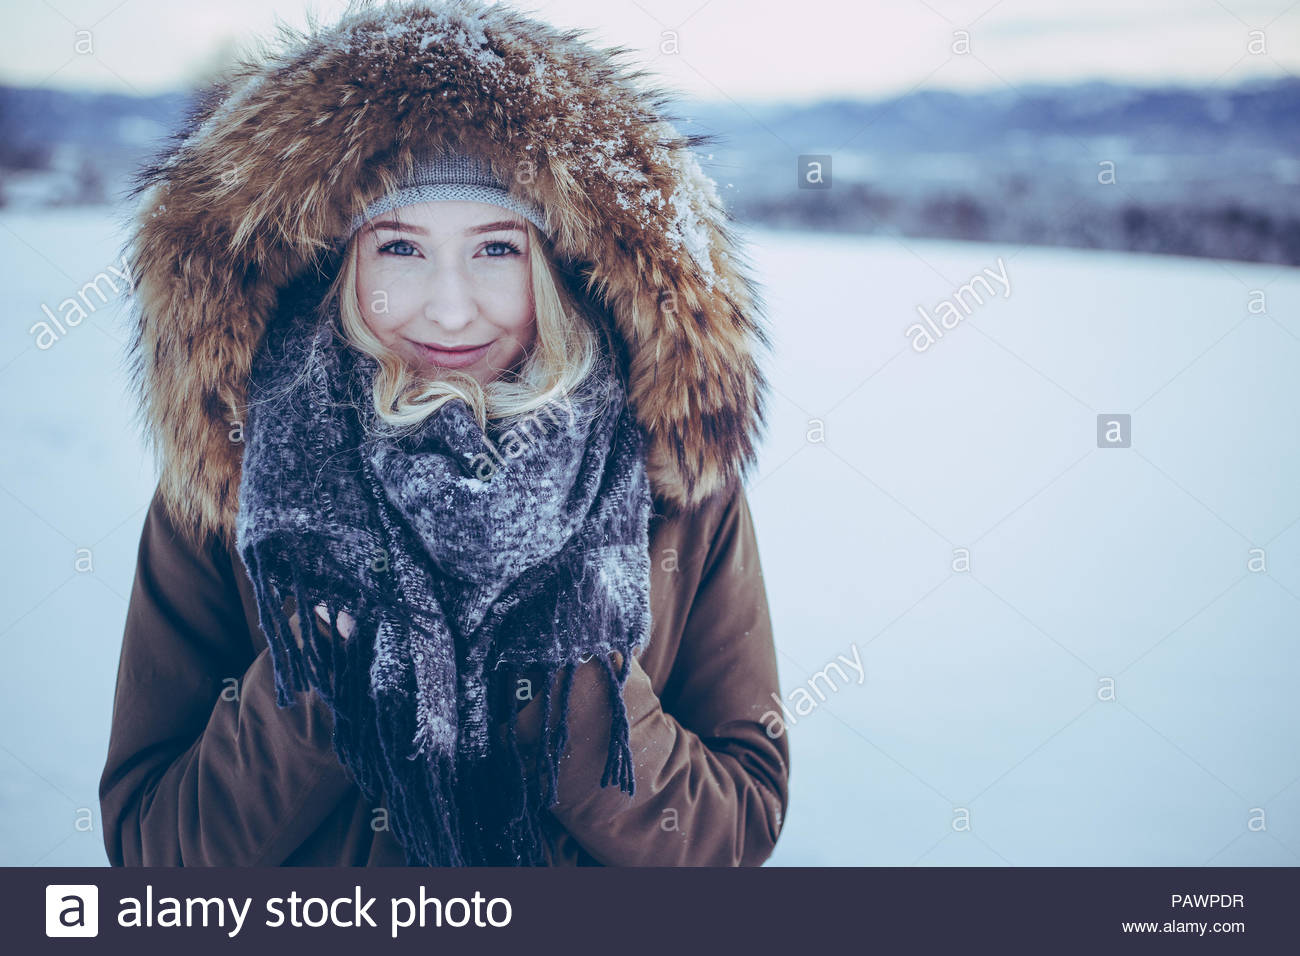 Portrait of smiling young woman in the snow during winter - Stock Image